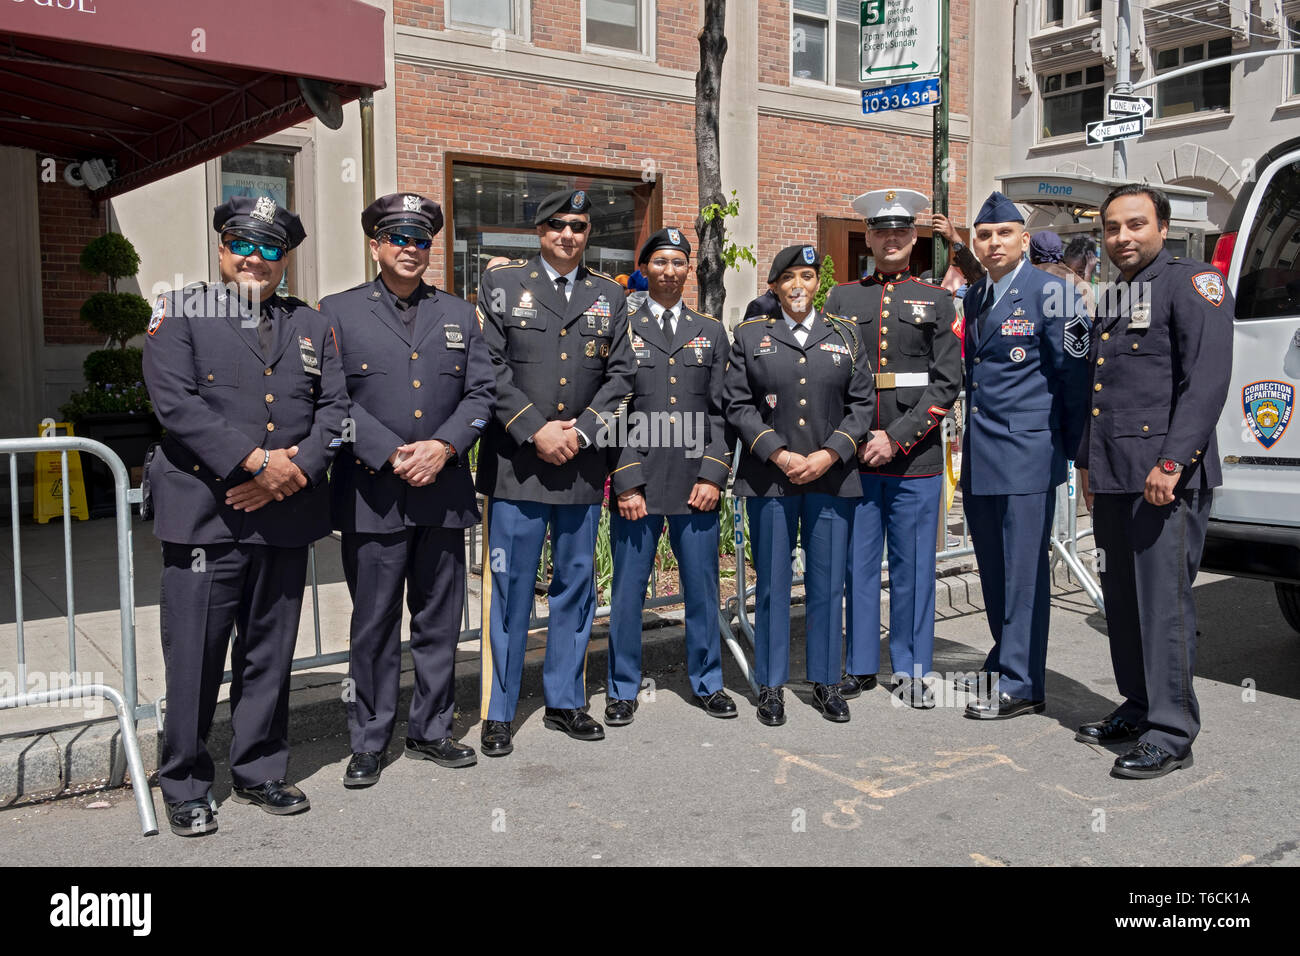 Sikh police & corrections officers and soldiers pose prior to the Sikh Day Parade in Manhattan, New York City. Stock Photo